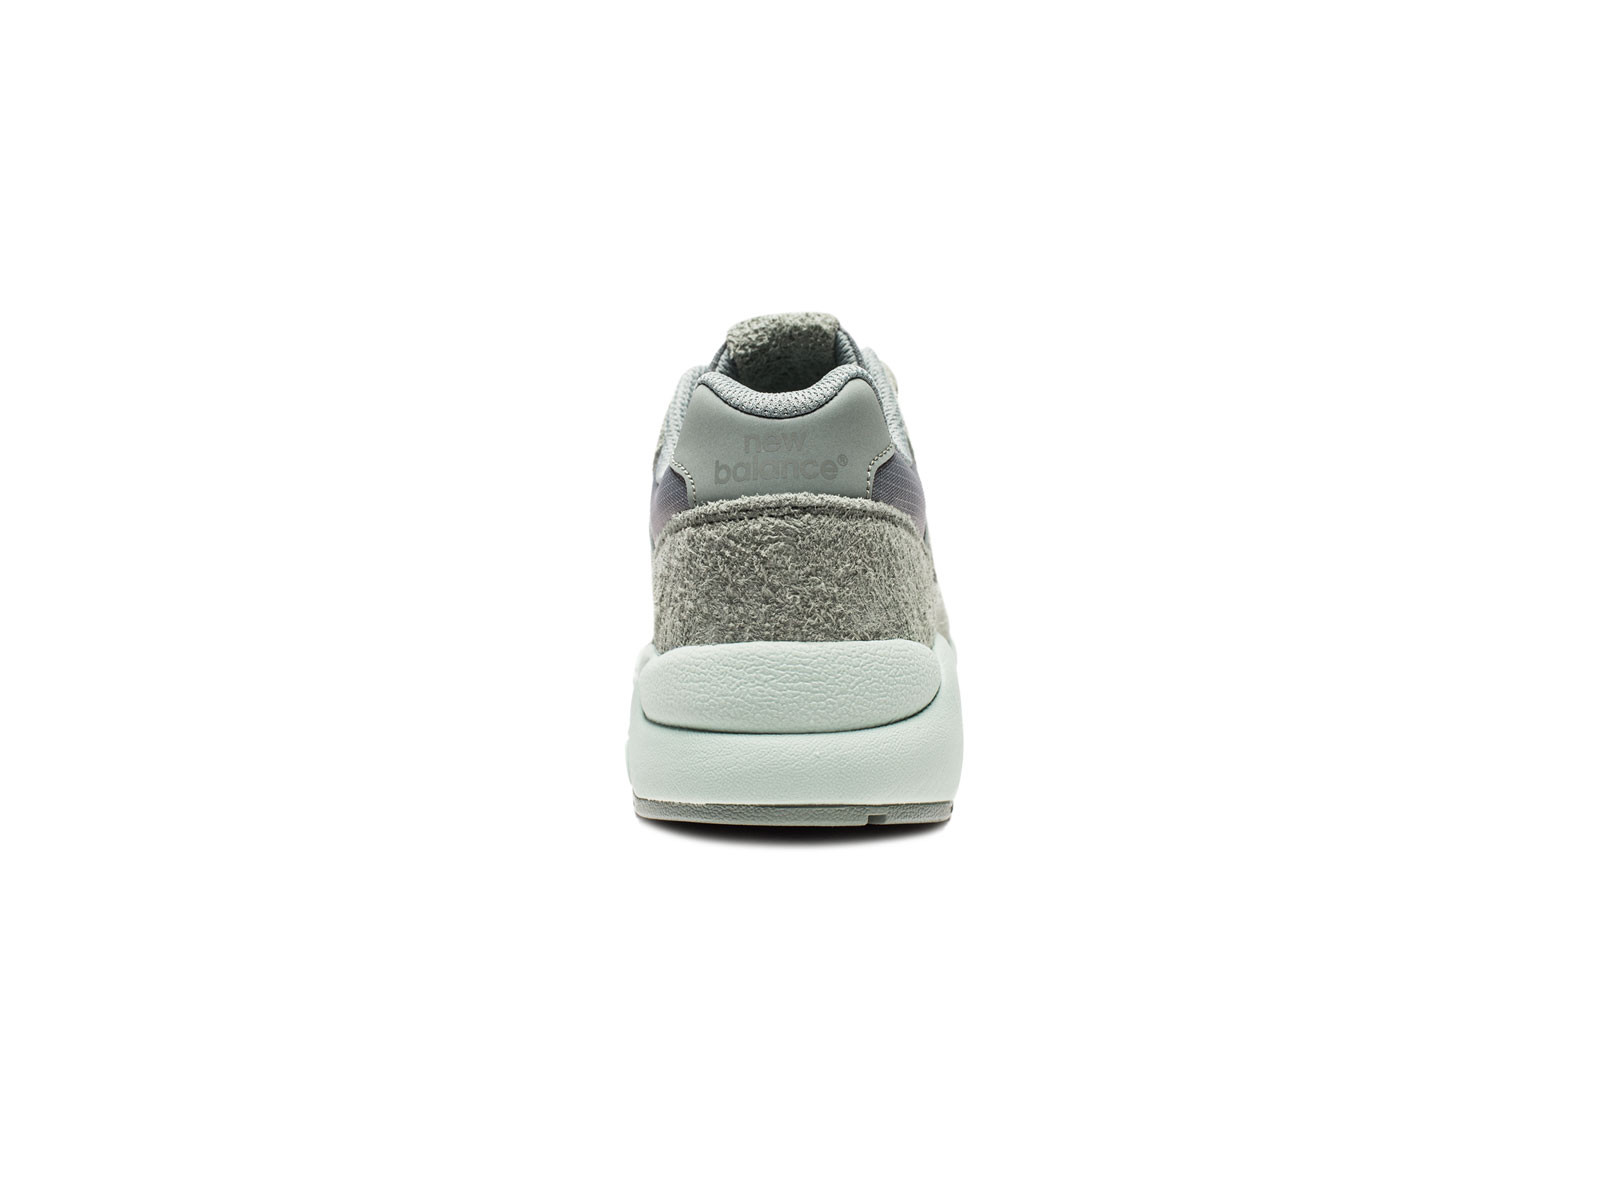 hypebeast-new-balance-mrt580-release-20160813-mitasneakers-styles-undefeated